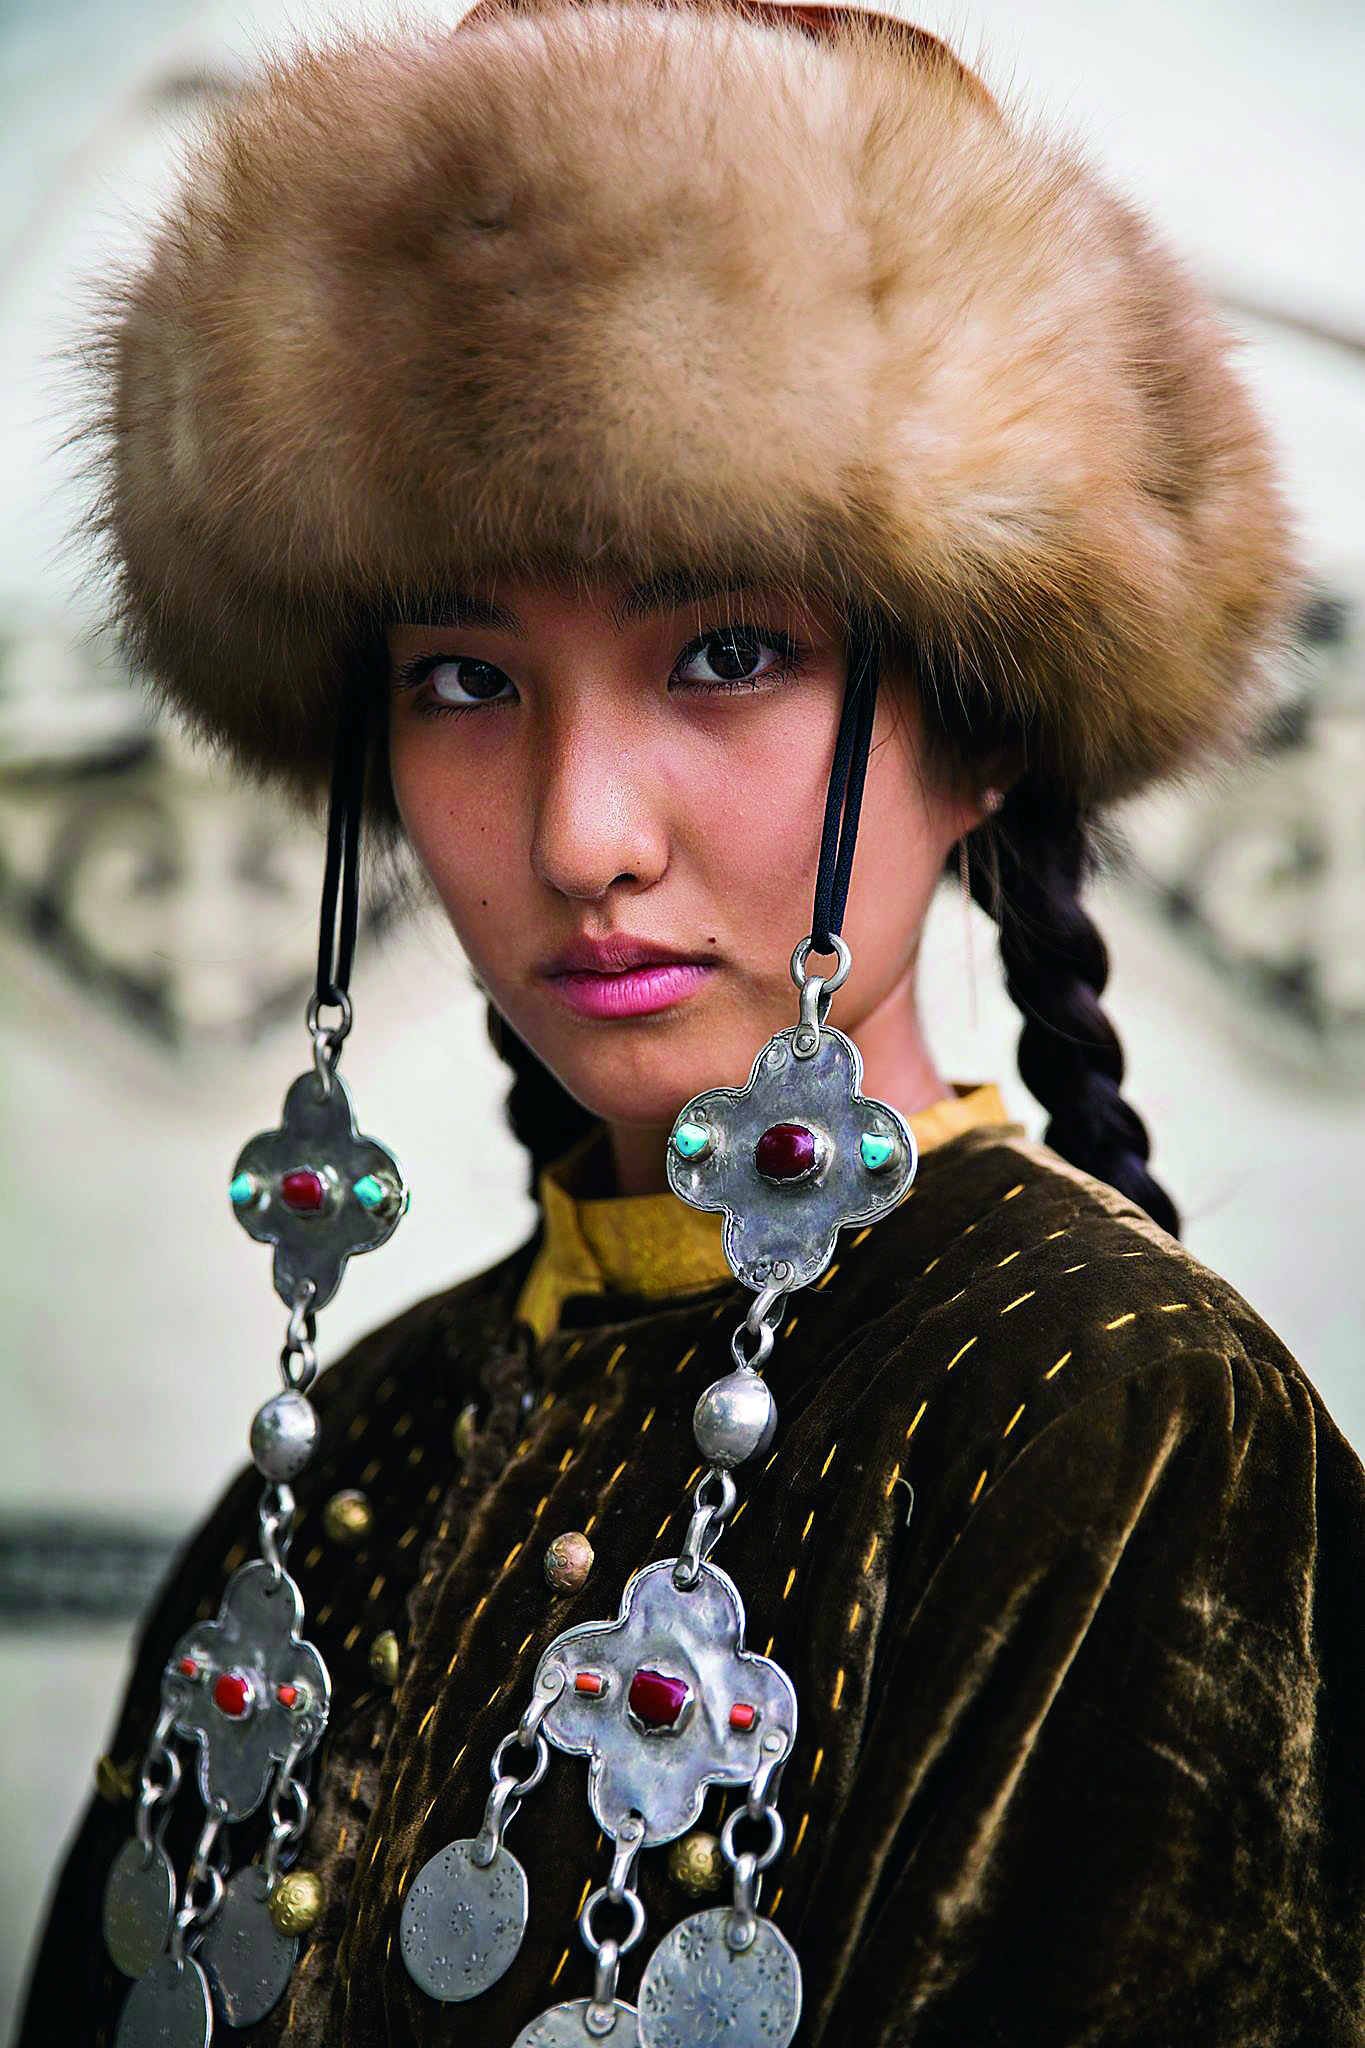 Name not provided Kyrgyzstan - The Atlas of Beauty - Women of the World in 500 Portraits Book by Mihaela Noroc - Women empowerment